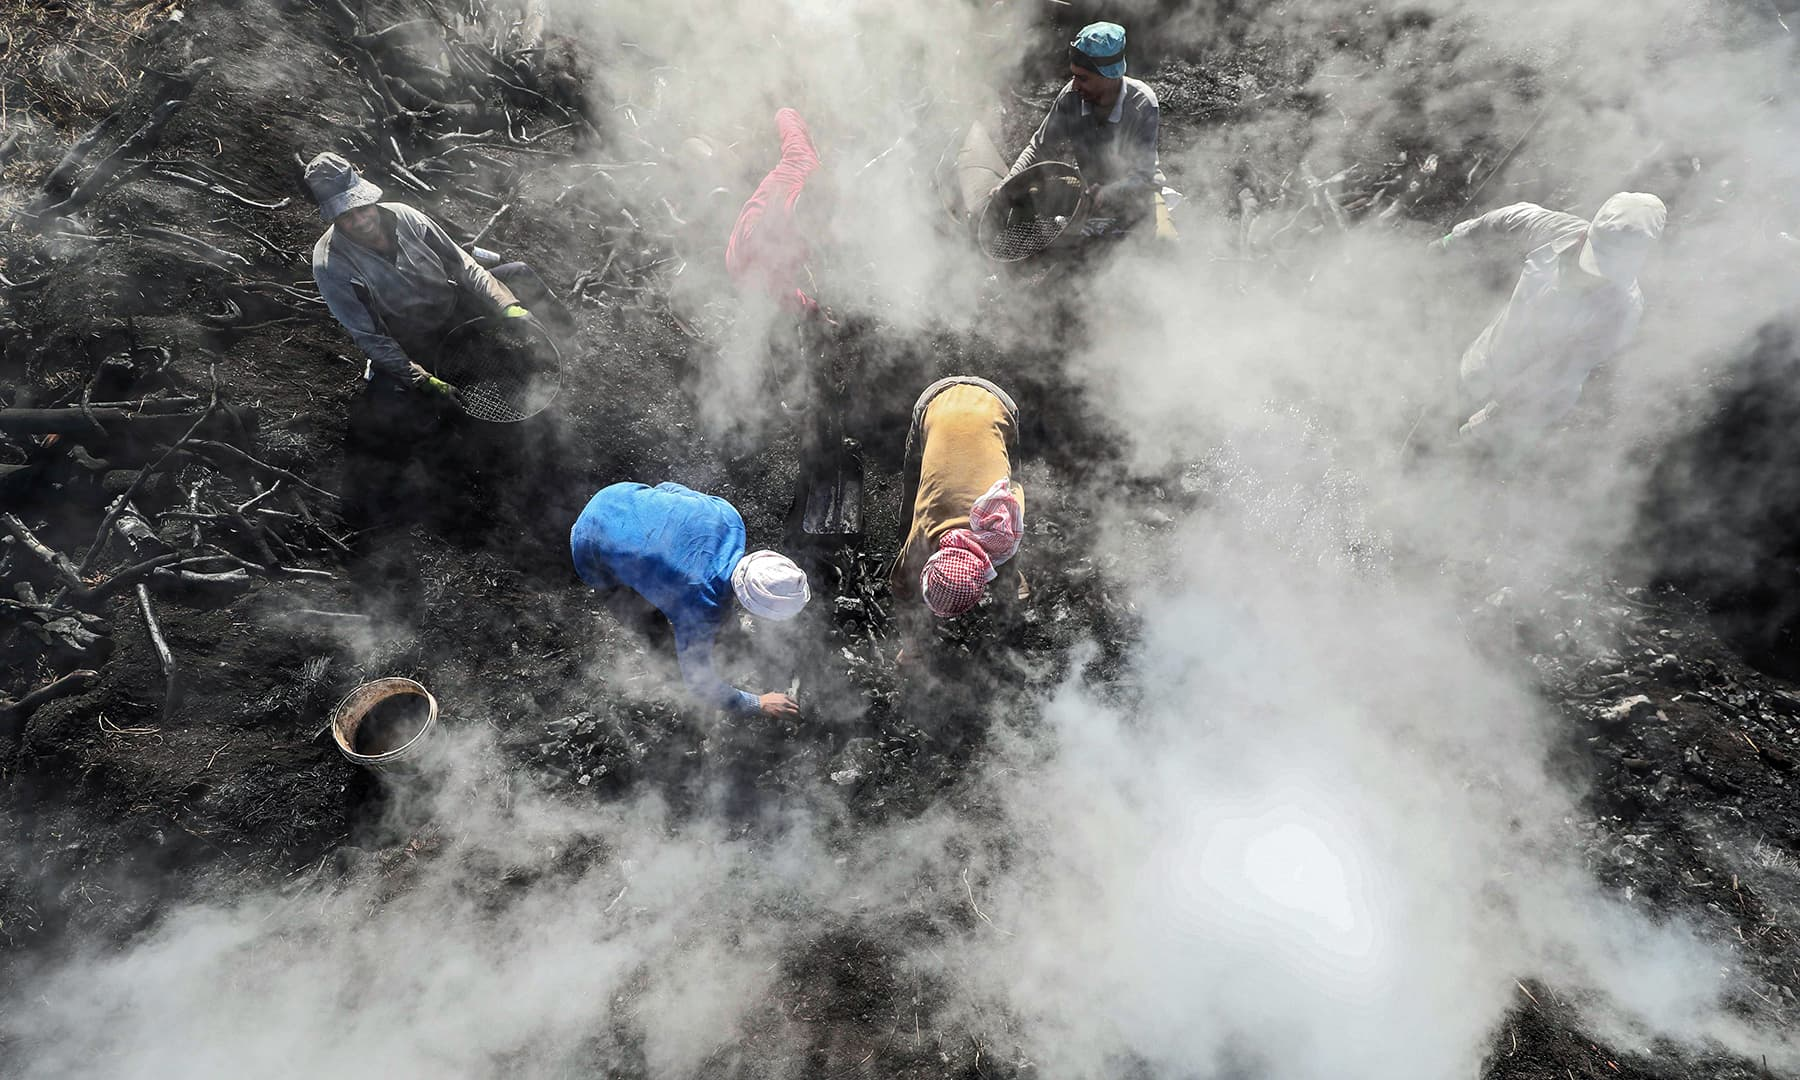 Egyptian labourers work at a charcoal factory in Egypt's Sharkia governorate. — AFP